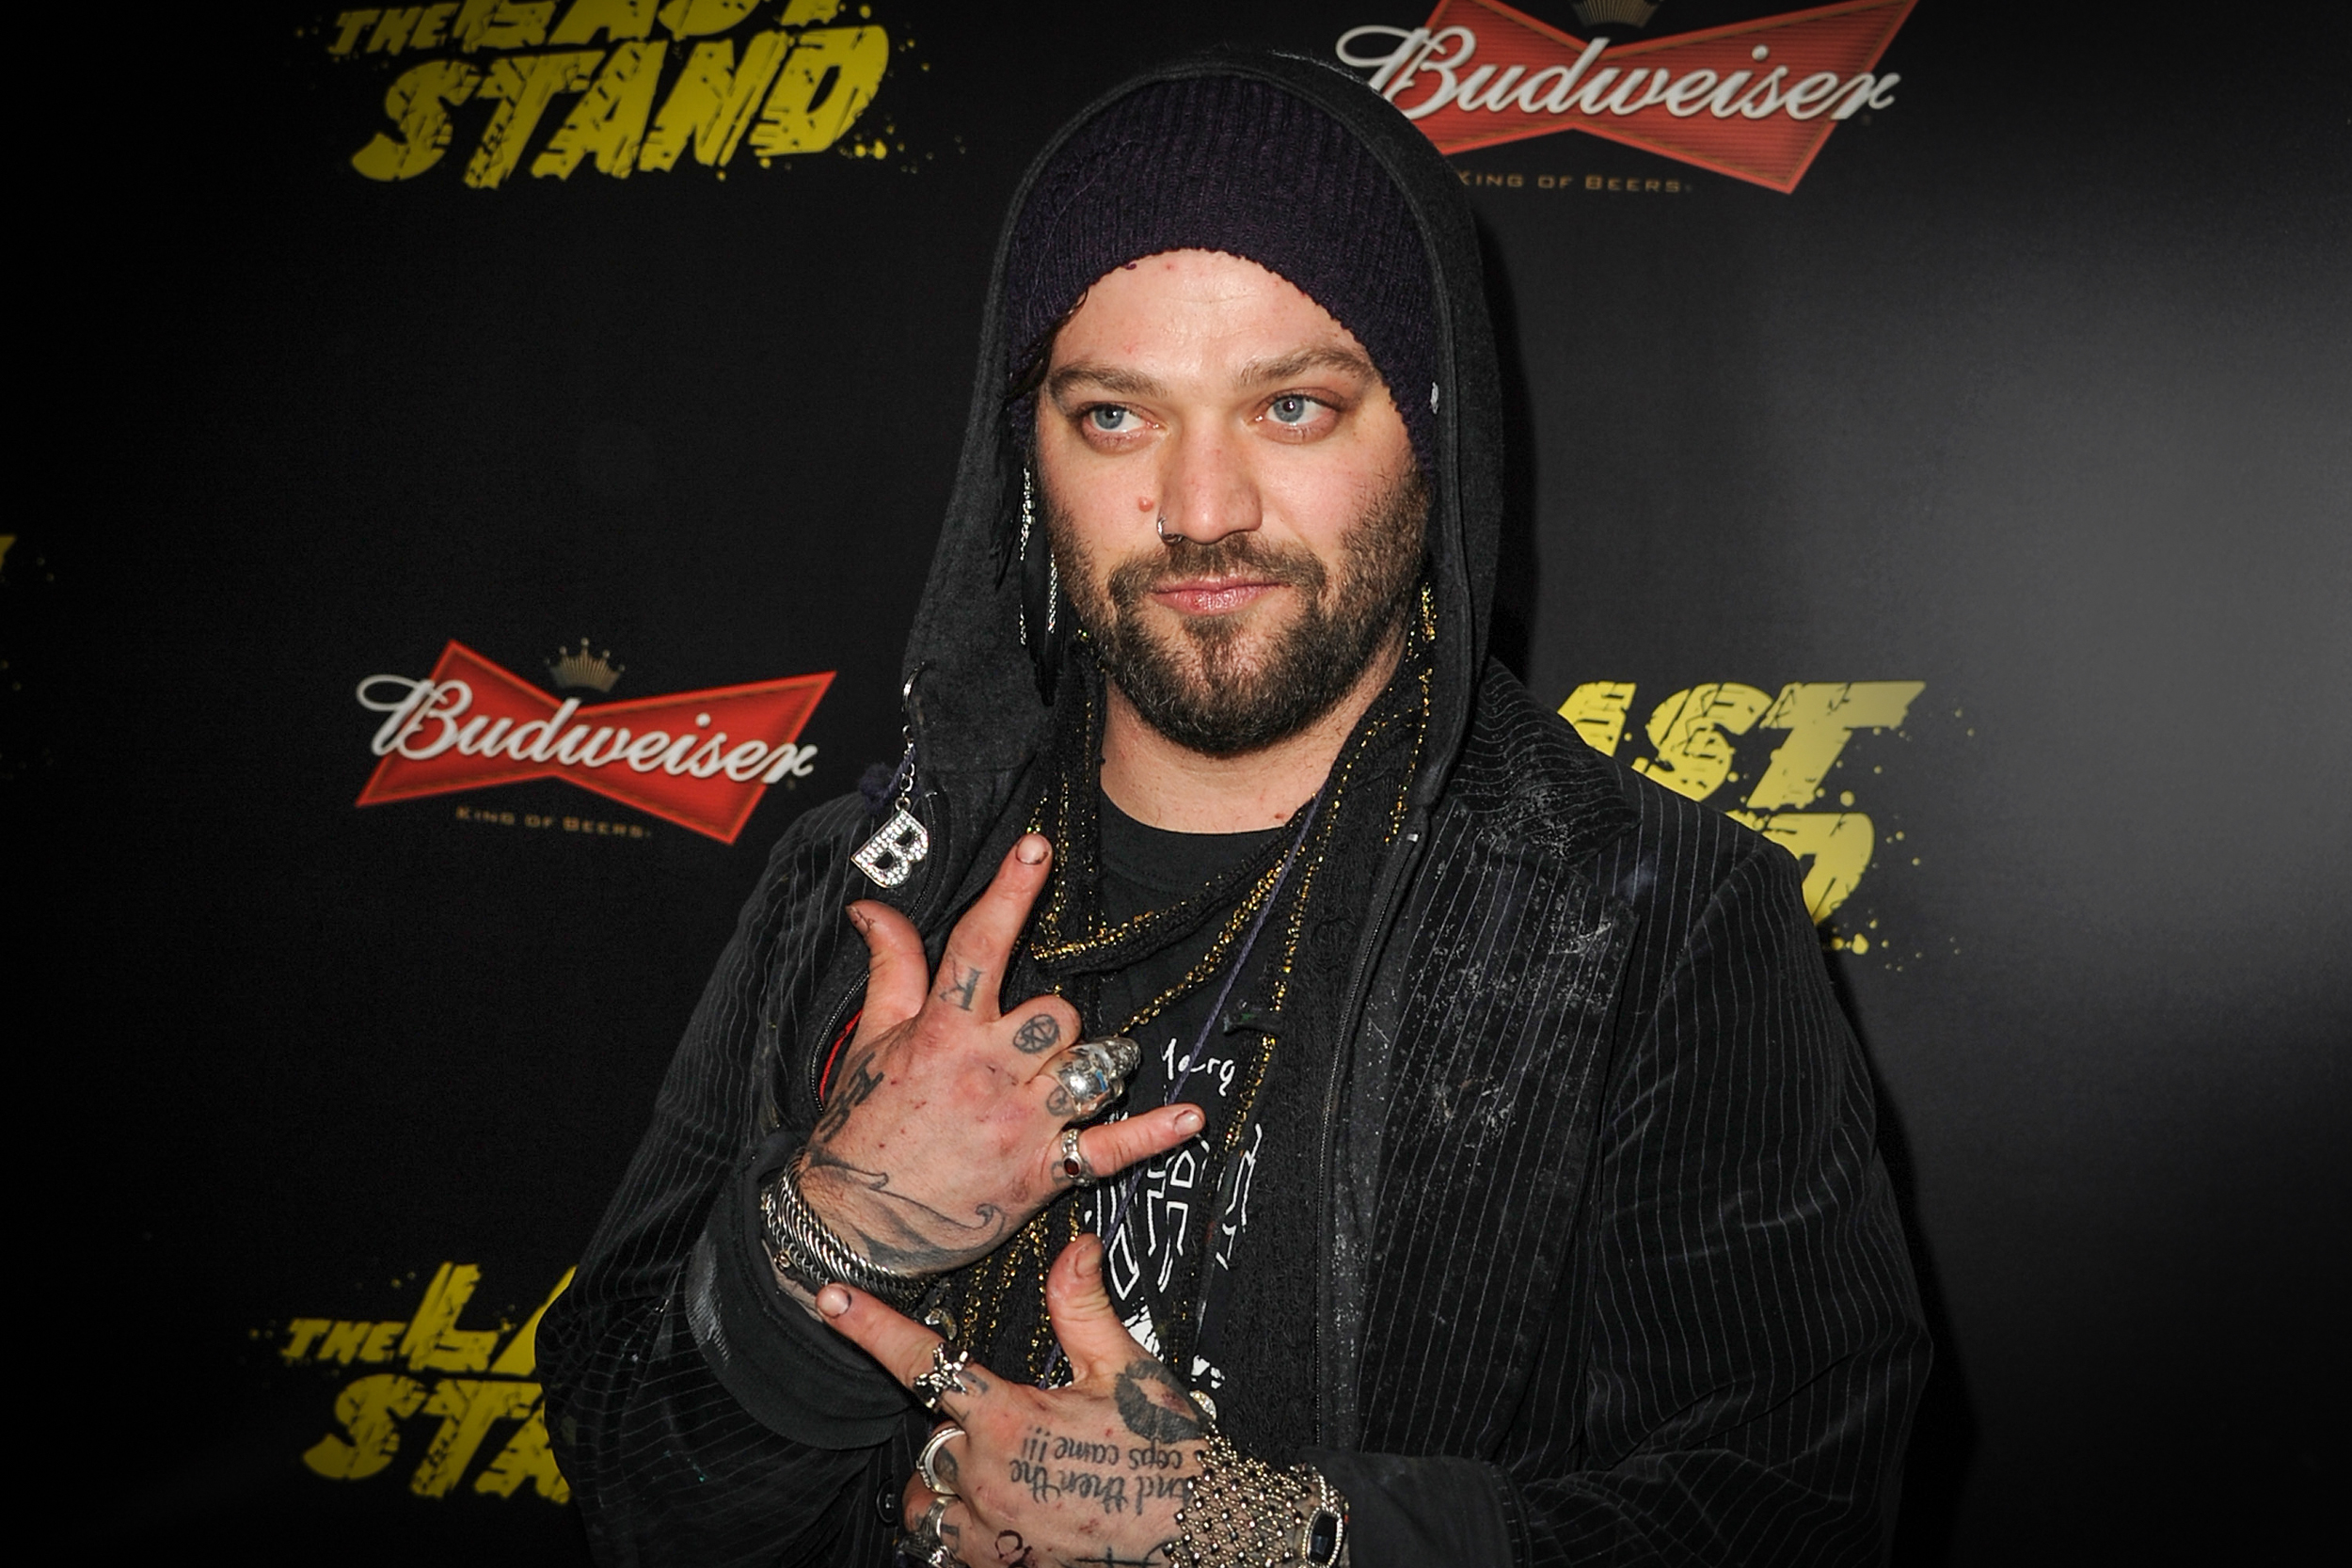 Bam Margera, who was fired from latest 'Jackass' film, sues to stop its release